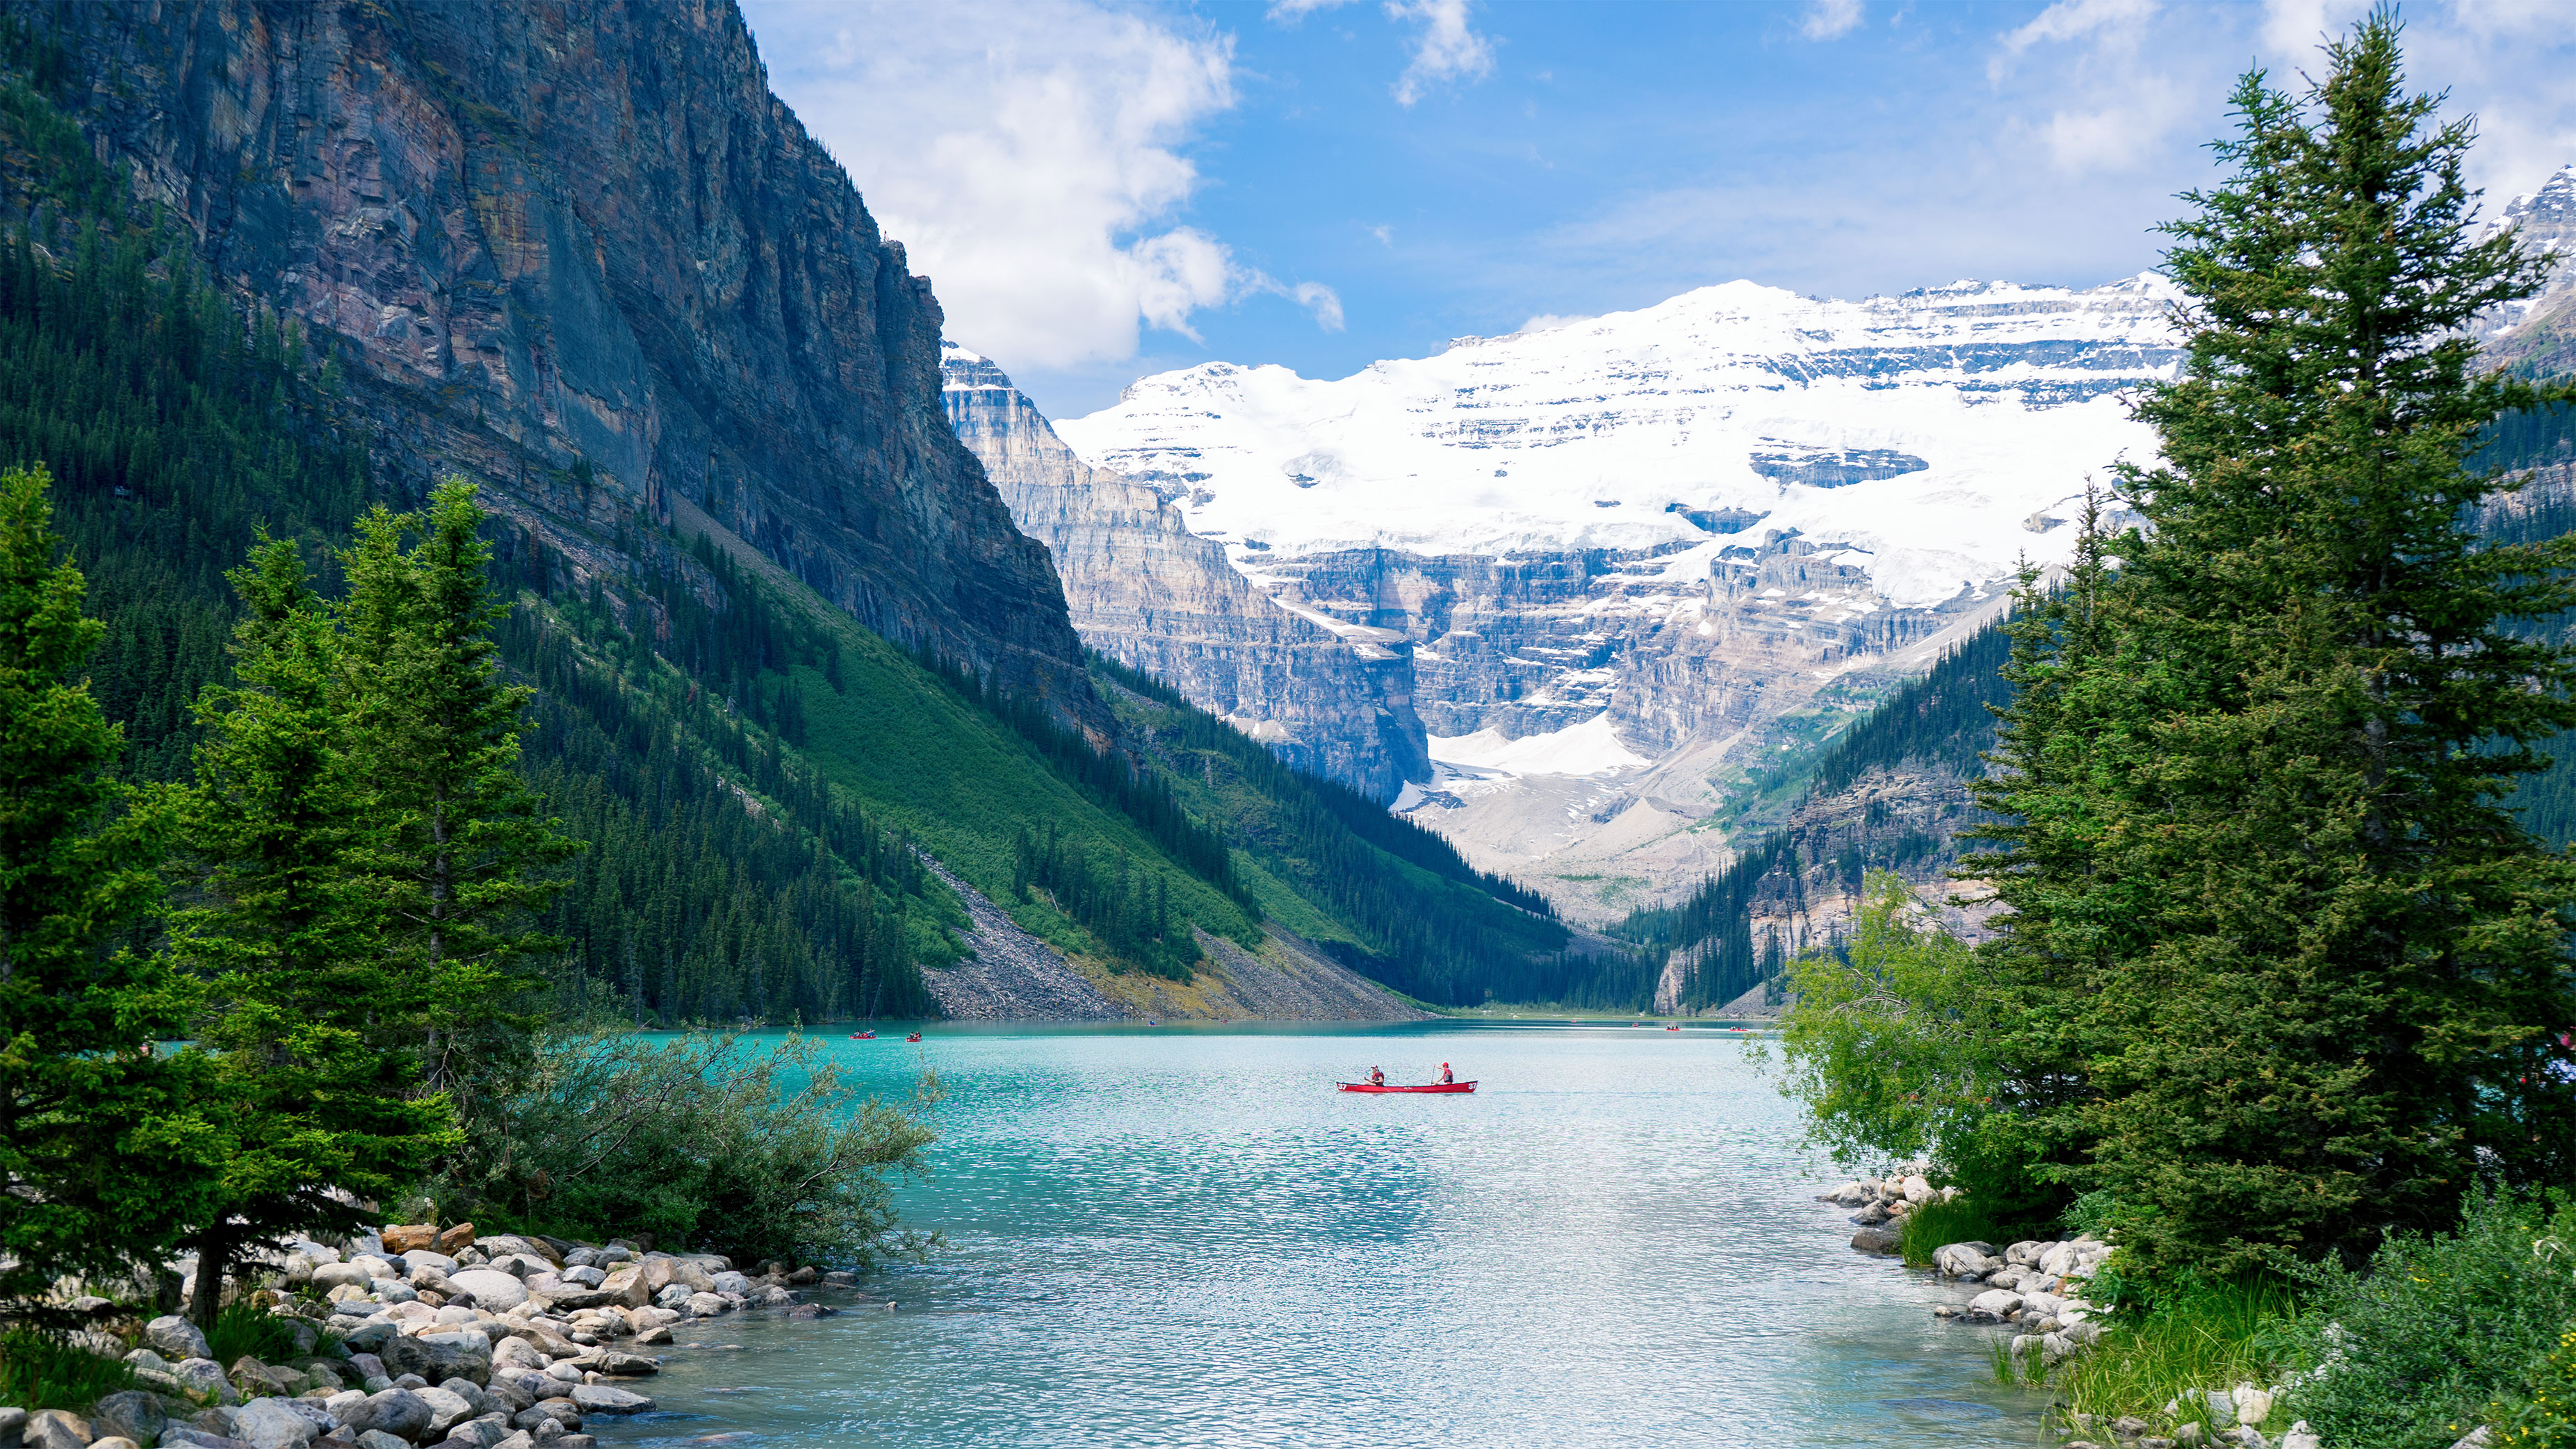 Canoeing in Lake Louise